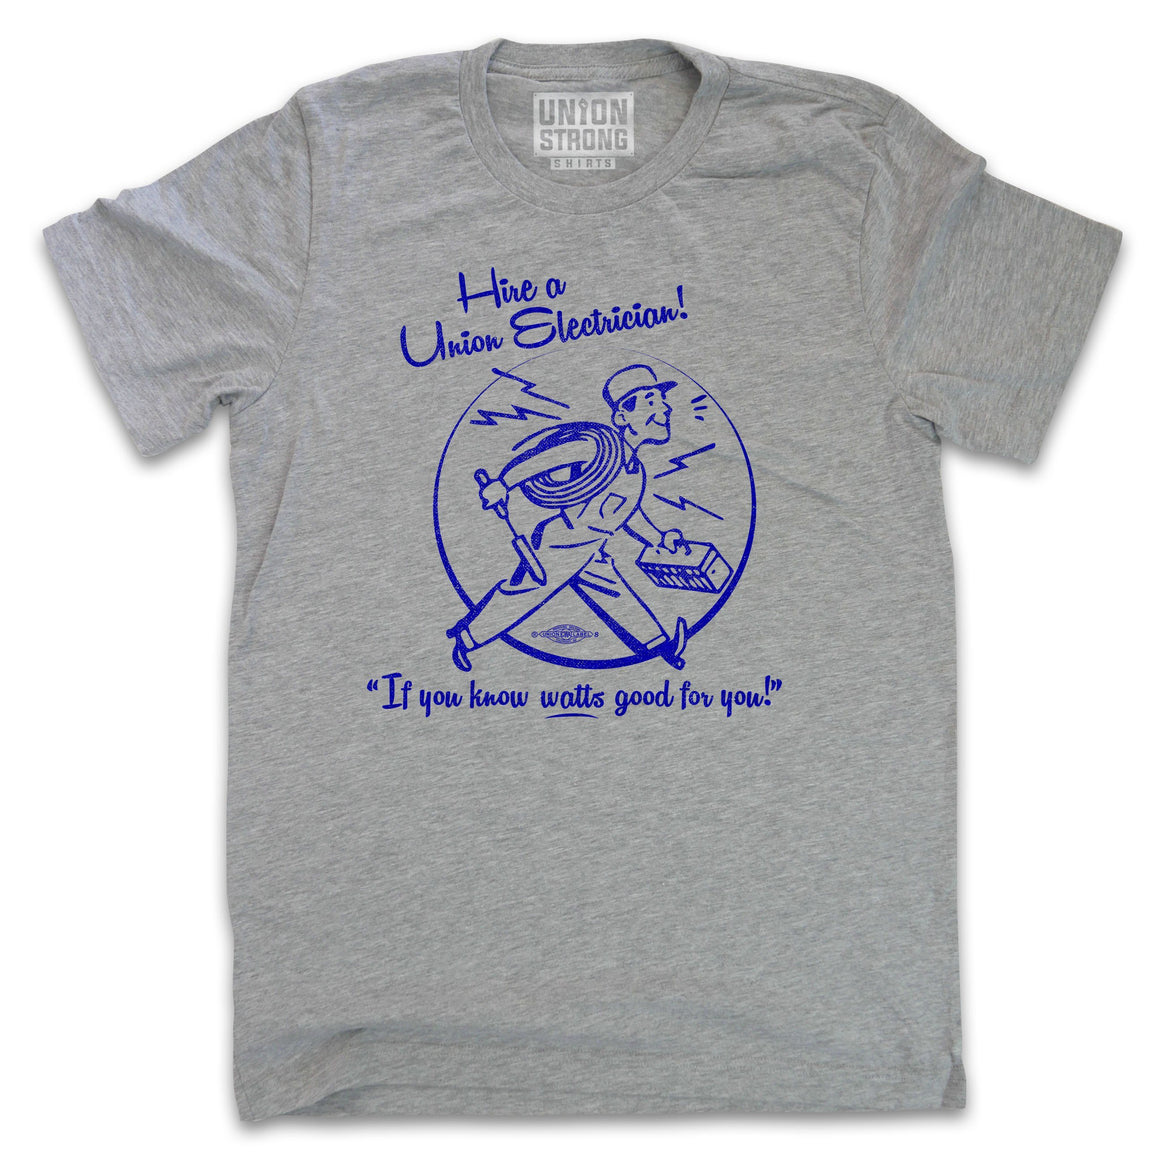 Hire A Union Electrician Shirts unionstrongshirts